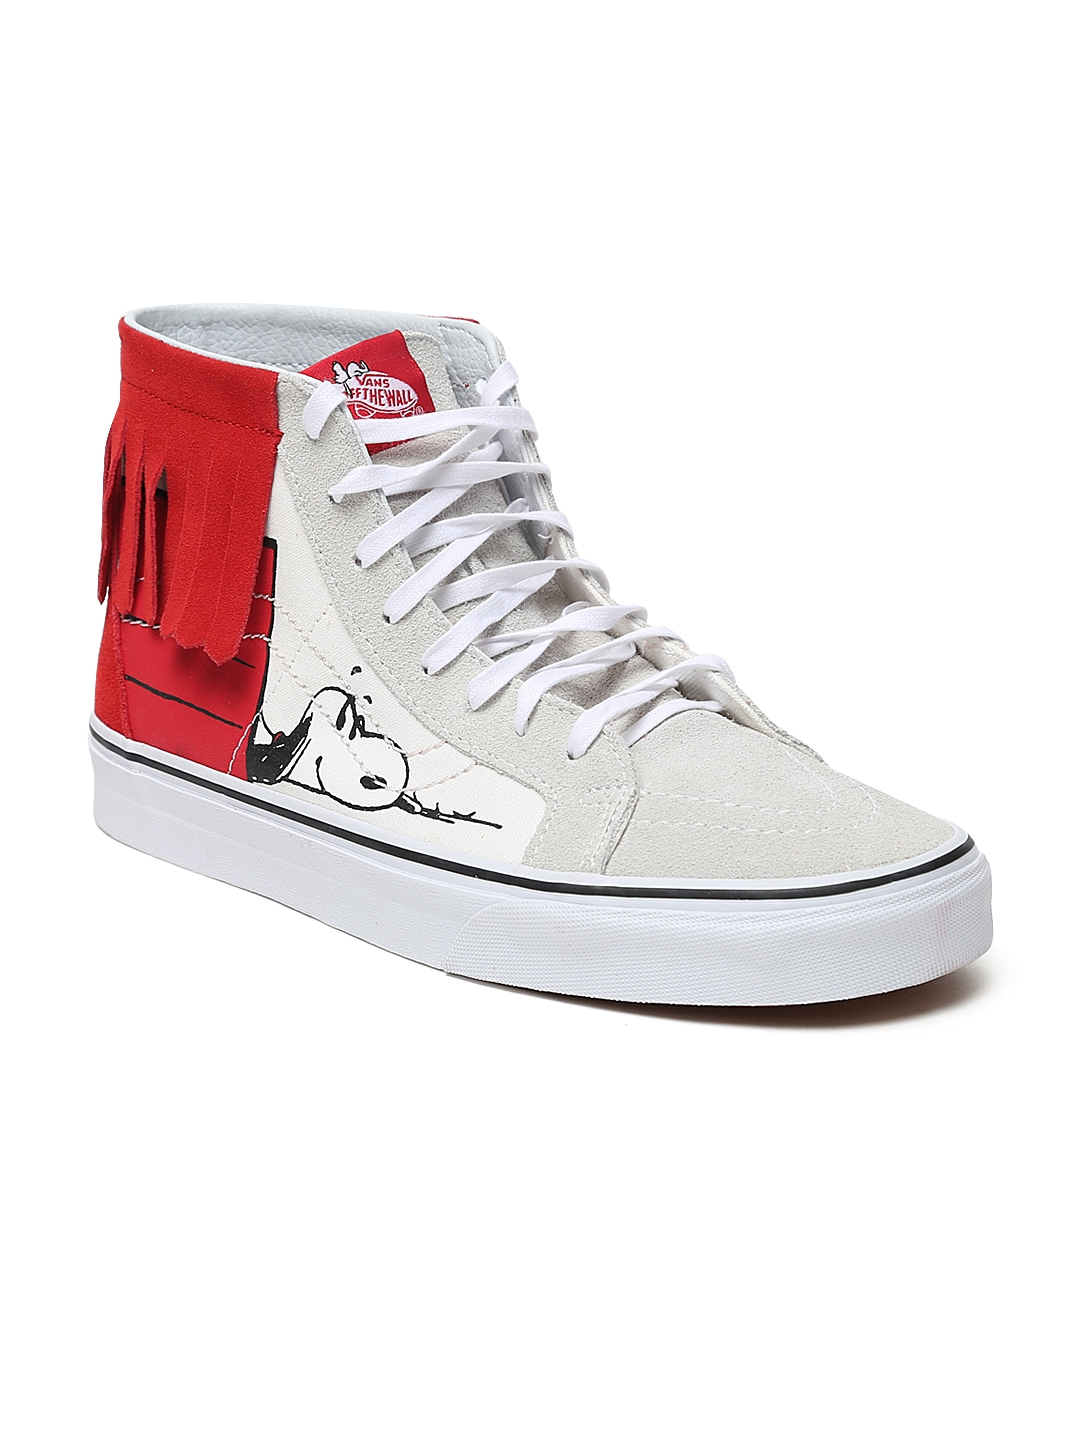 4476305bd5 Vans Unisex Off-White   Red Colourblocked SK8-Hi Moc Suede High-Top Sneakers